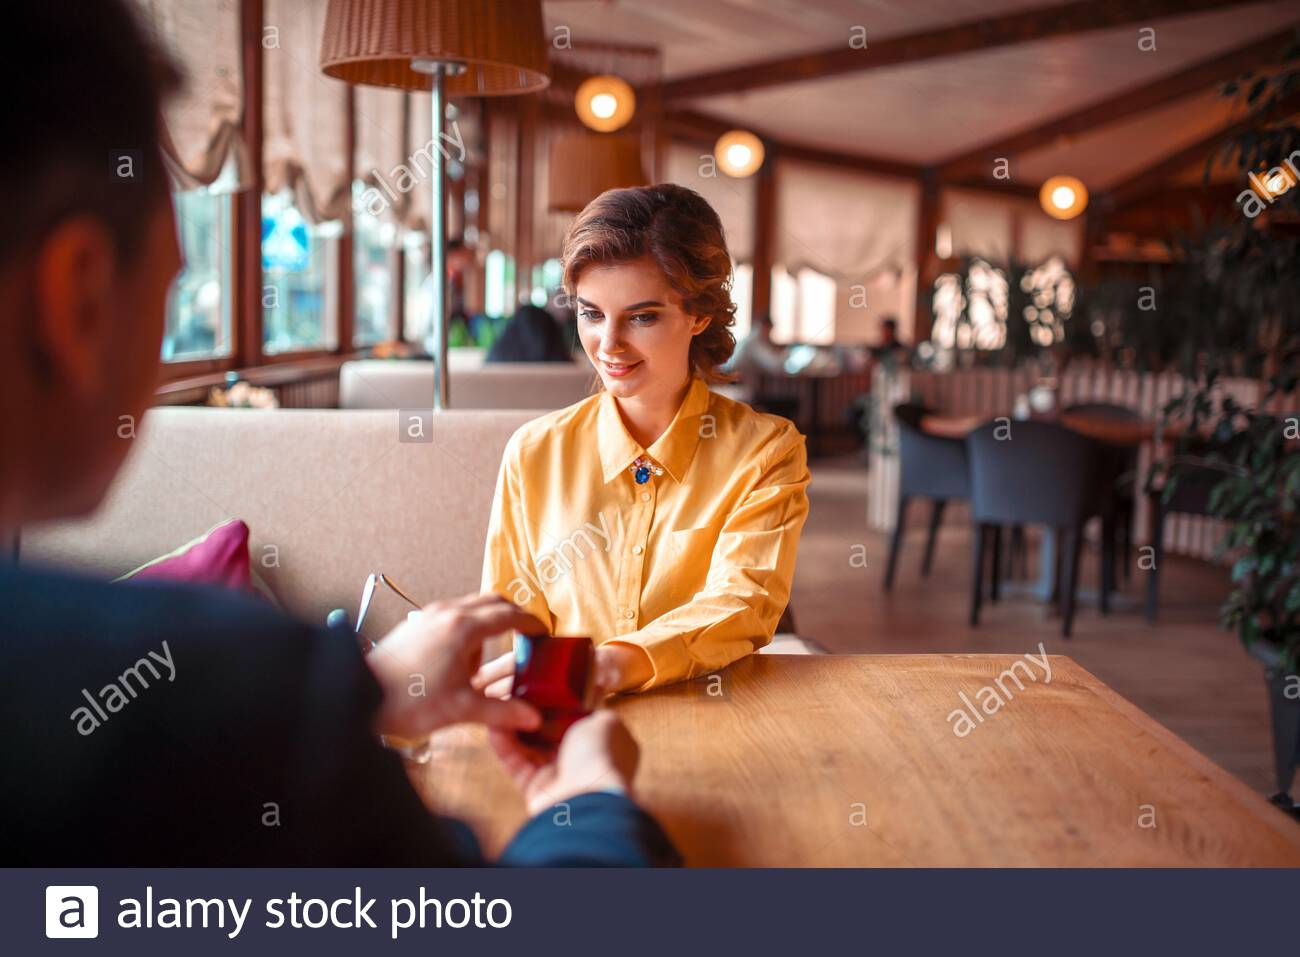 Young Man Makes Marriage Proposal To Beautiful Woman At Luxury Restaurant Couple Romantic Date Stock Photo Alamy